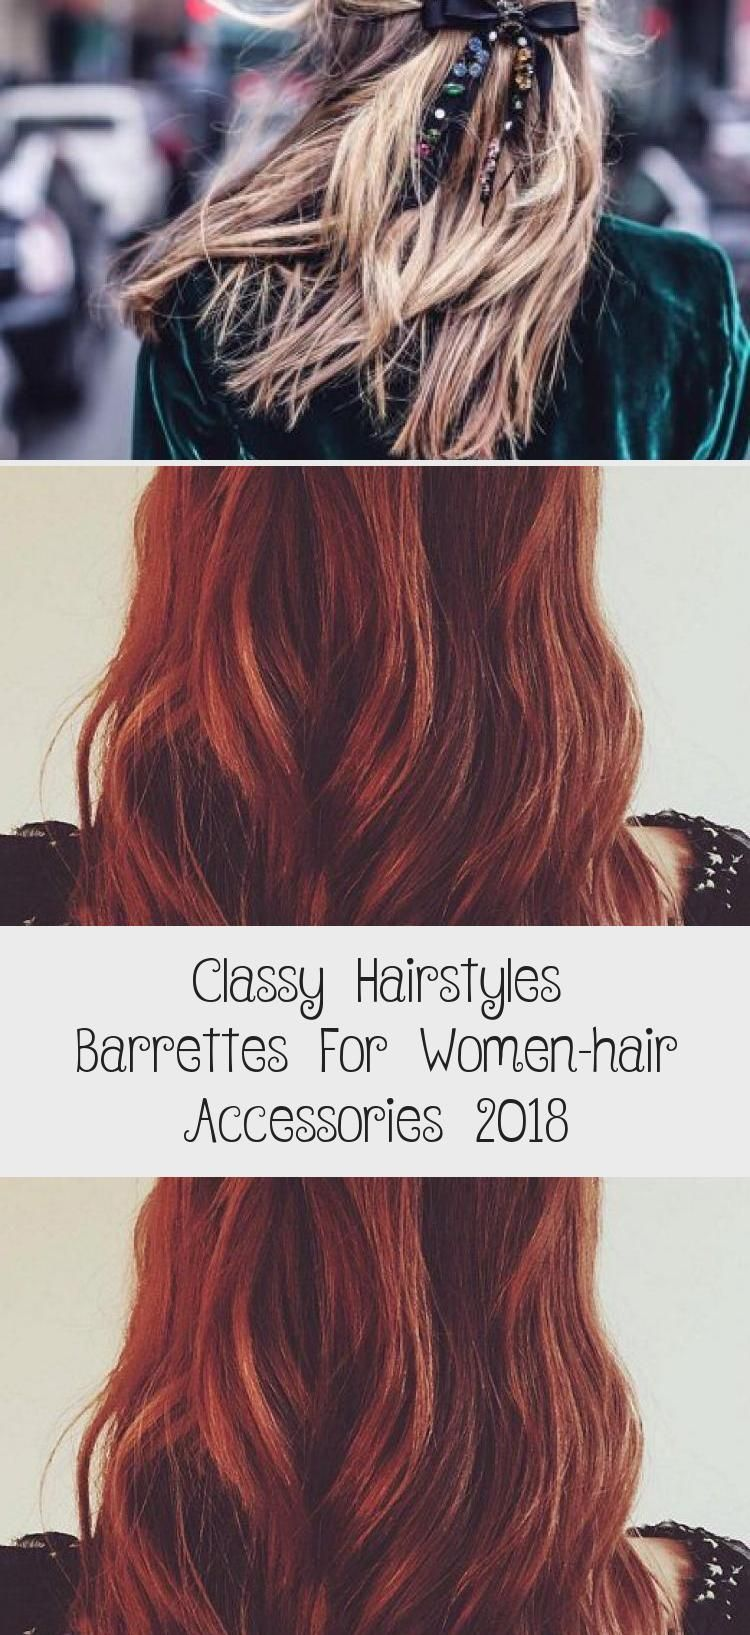 Classy Hairstyles Barrettes For Women Hair Accessories 2018 Dyedhairtips Dyedhairorange Light In 2020 Classy Hairstyles Womens Hairstyles Hair Accessories For Women